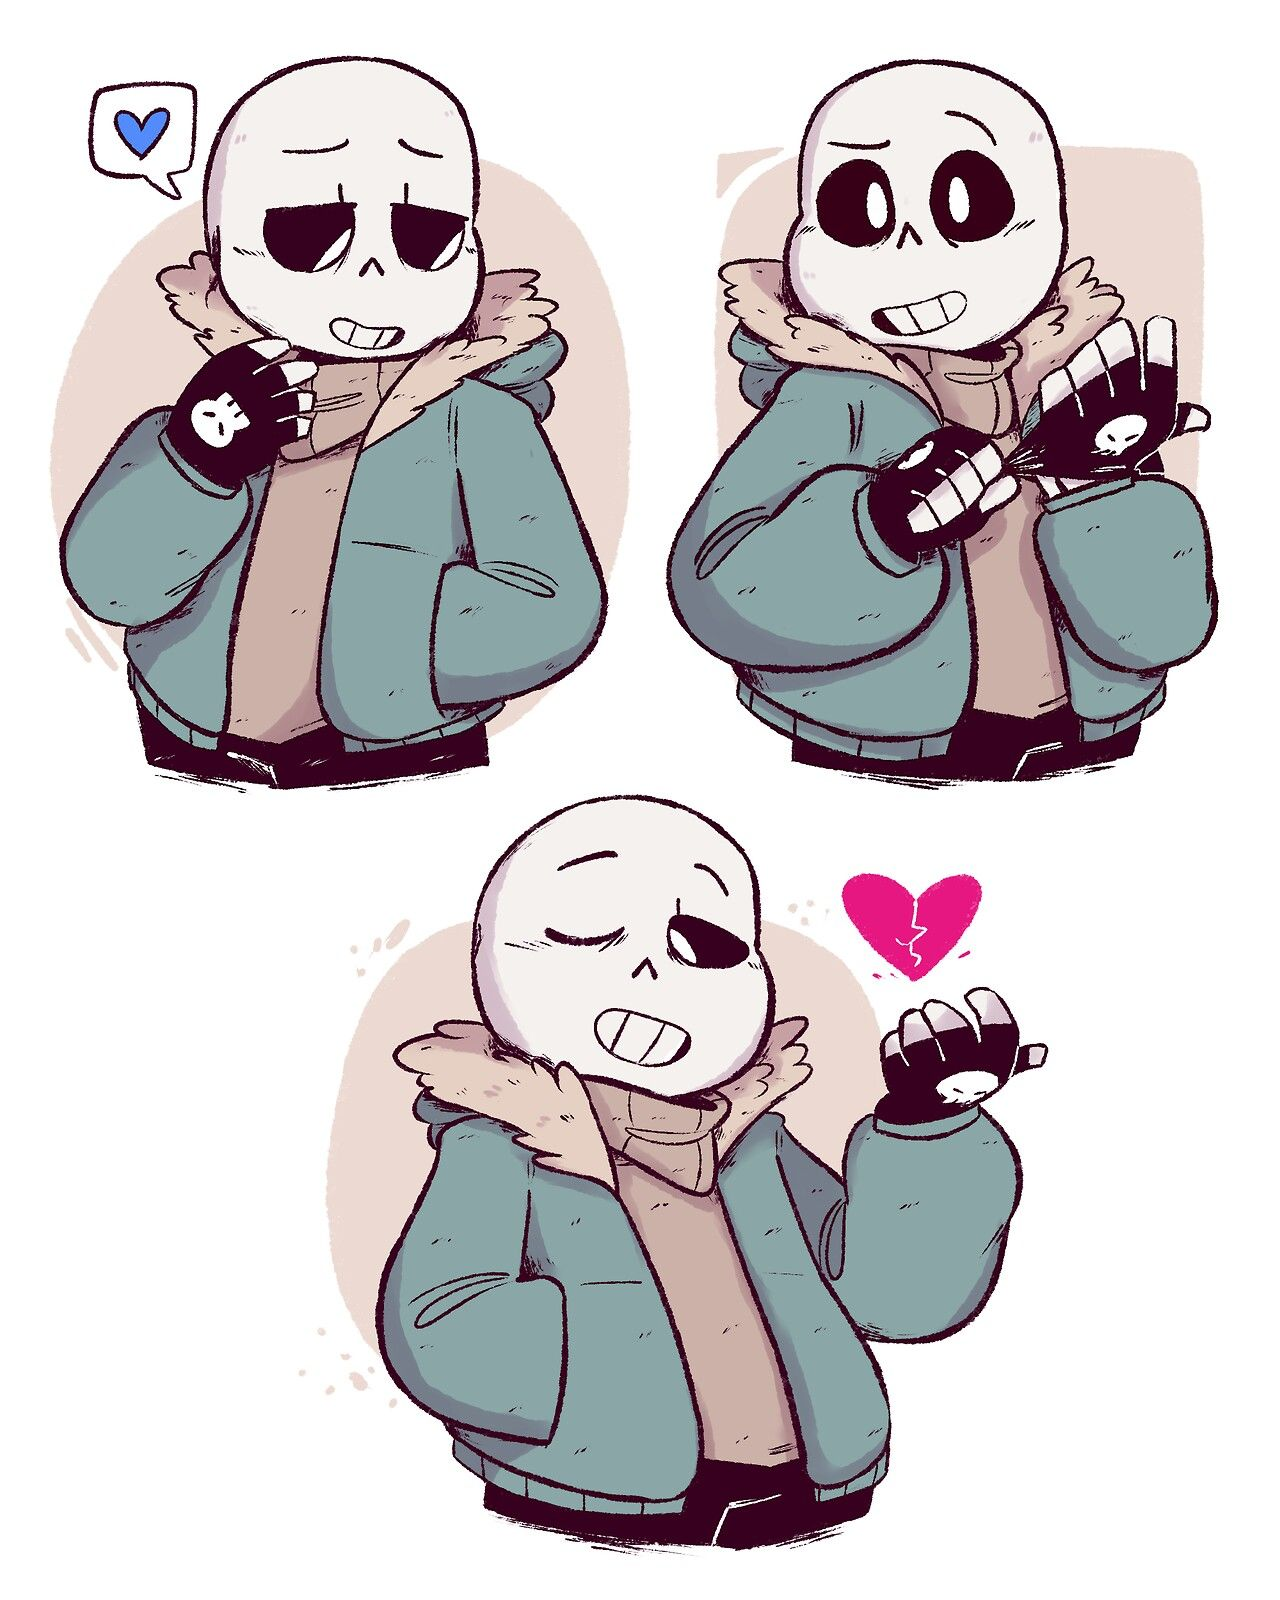 Pin By (★^O^★) On Undertale/Deltarune